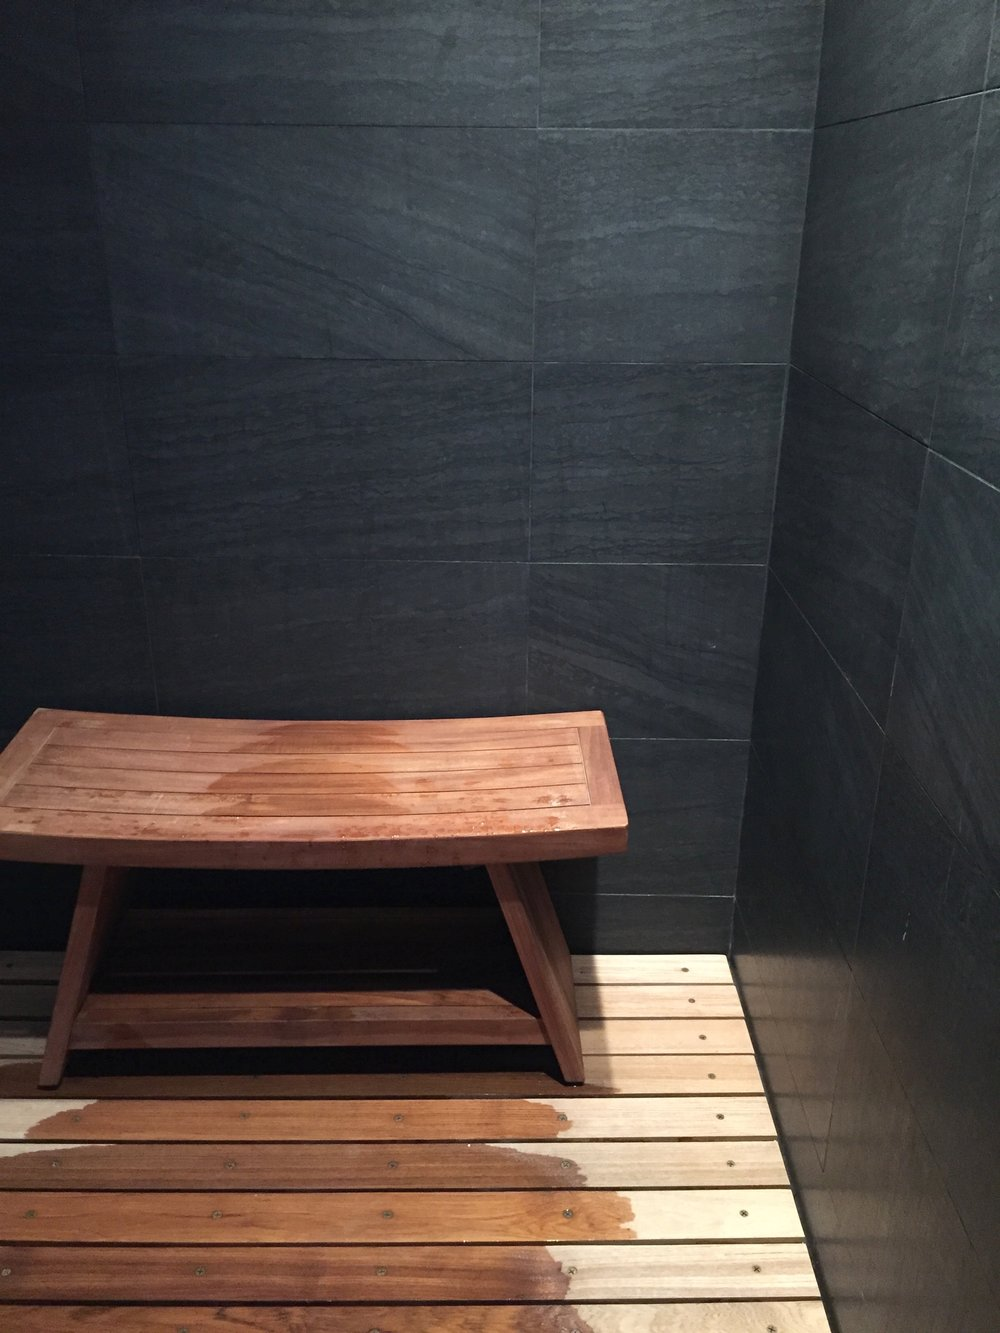 "I designed this shower floor out of teak wood ""decking"" to give a warm feel to your feet that tile cannot. The  teak bench  gives a flexible and comfortable place to sit while showering."